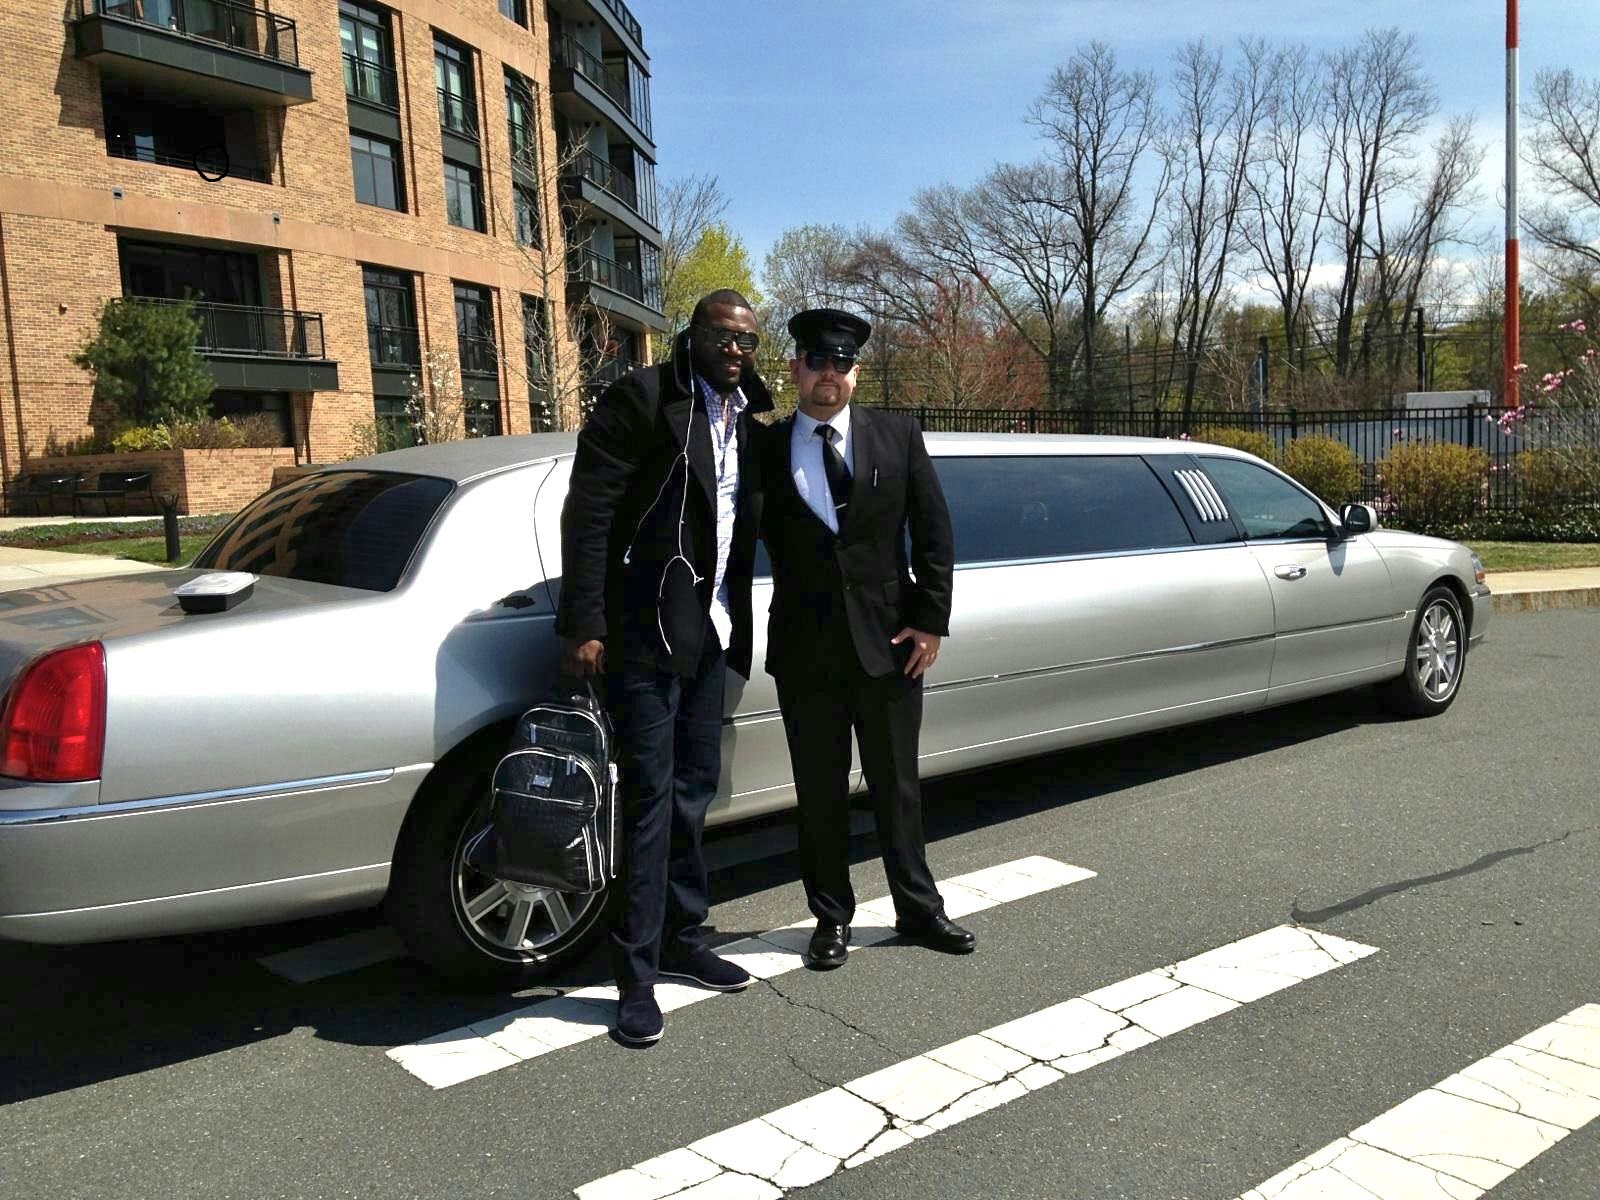 Limos for Rent Townsend Ma 01469